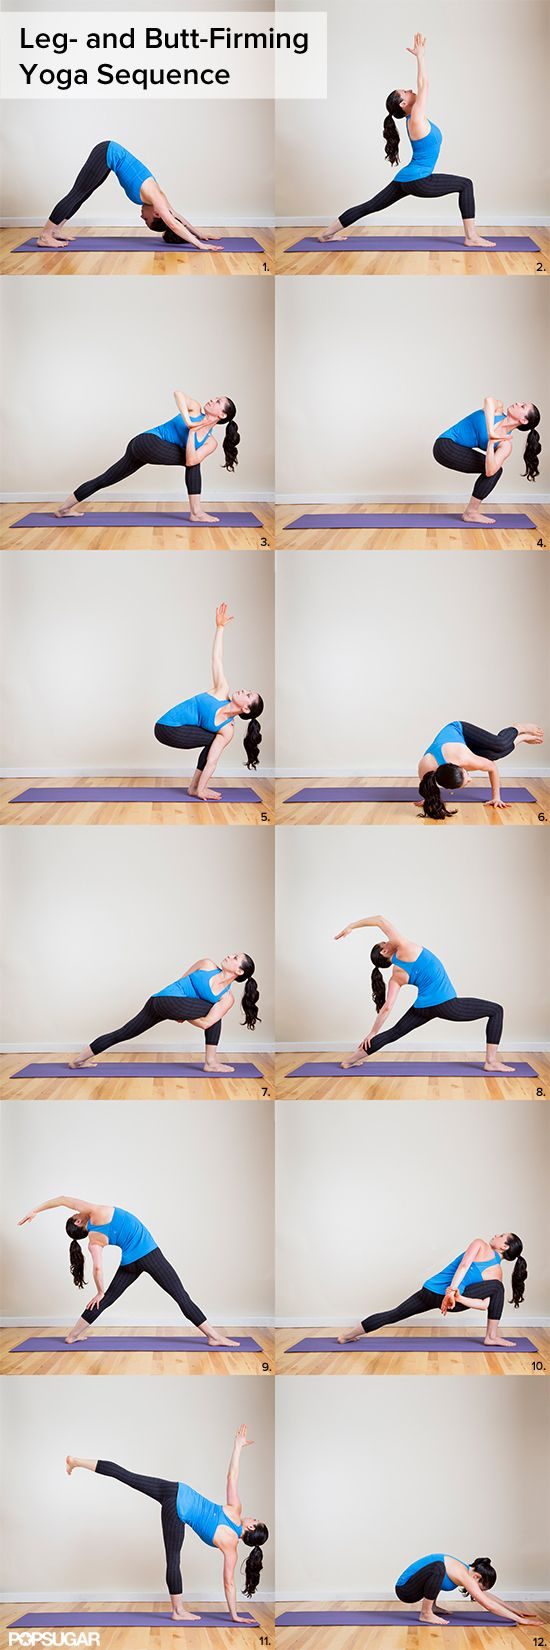 "Burning Squats Yoga Sequence: Your Jeans Will Say ""More Please! by fitsugar #Yoga #Squats_Sequence #YOGA #HEALTH #HAWA"